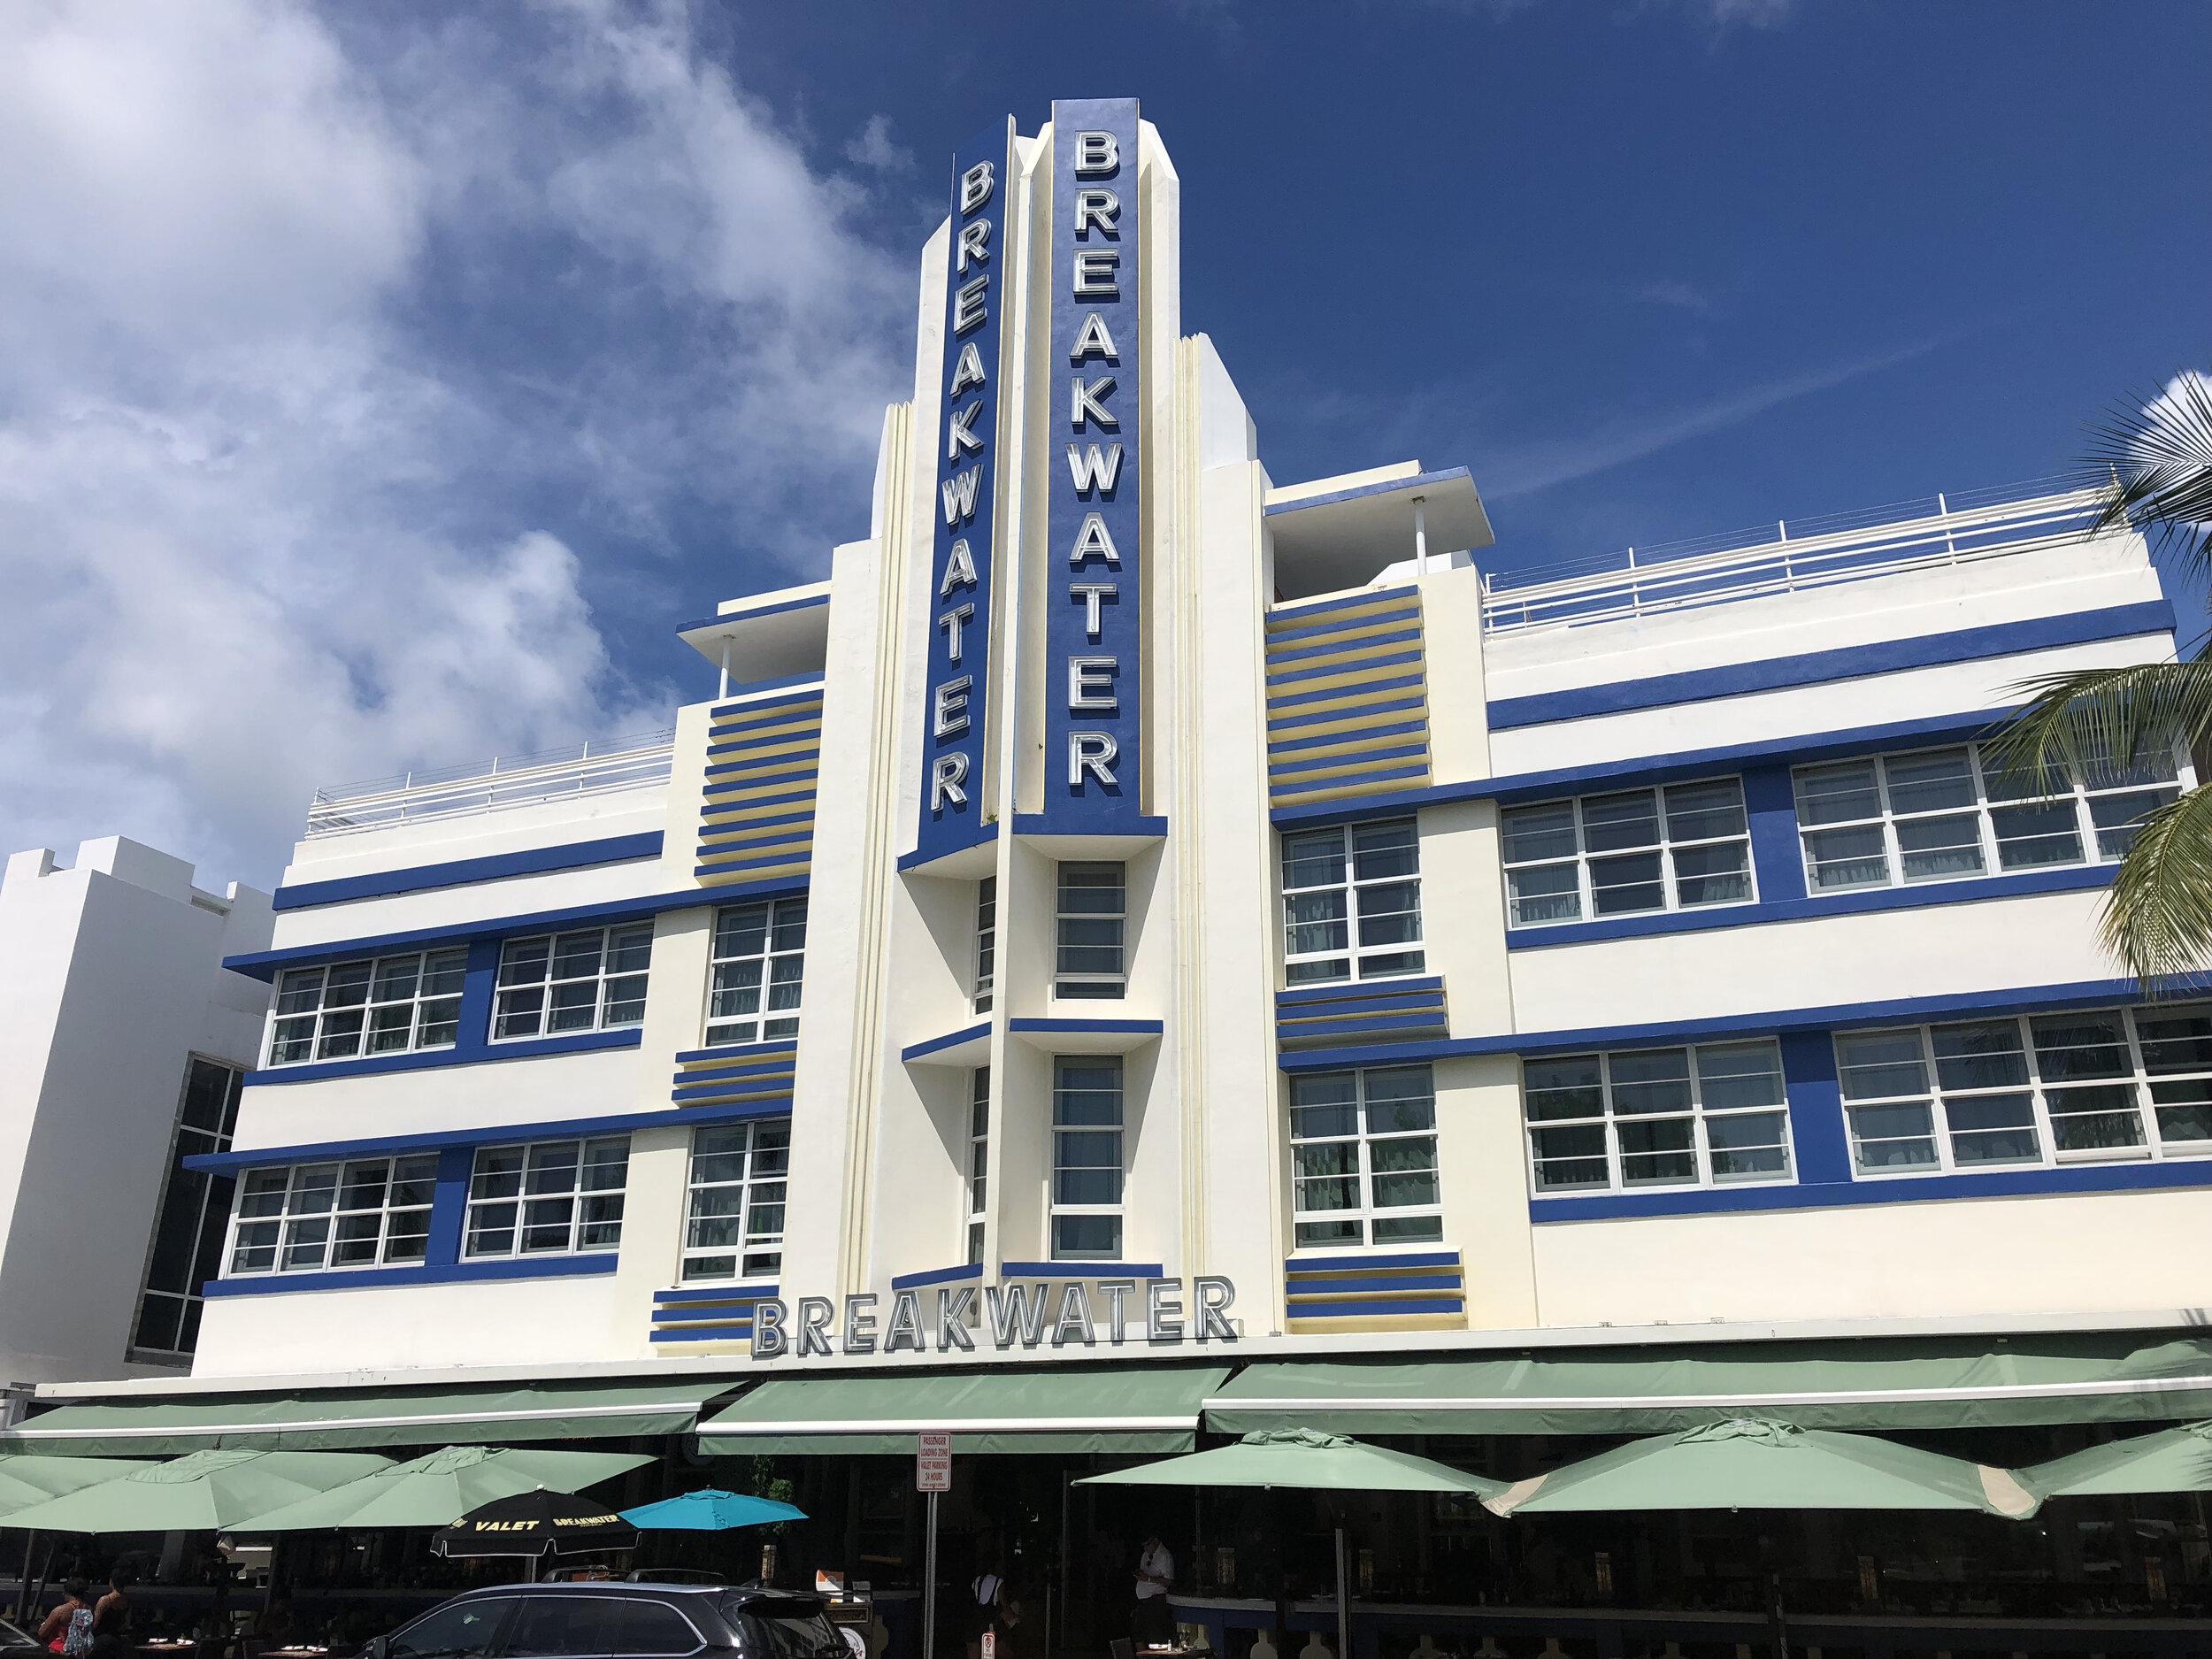 Opened in 1936, The Breakwater is pure Art Deco, with an emphasis on symmetry and clean, colorful lines. Designed by Anton Skislewicz, the hotel's electric blue and neon-lit central tower epitomizes Miami Beach.